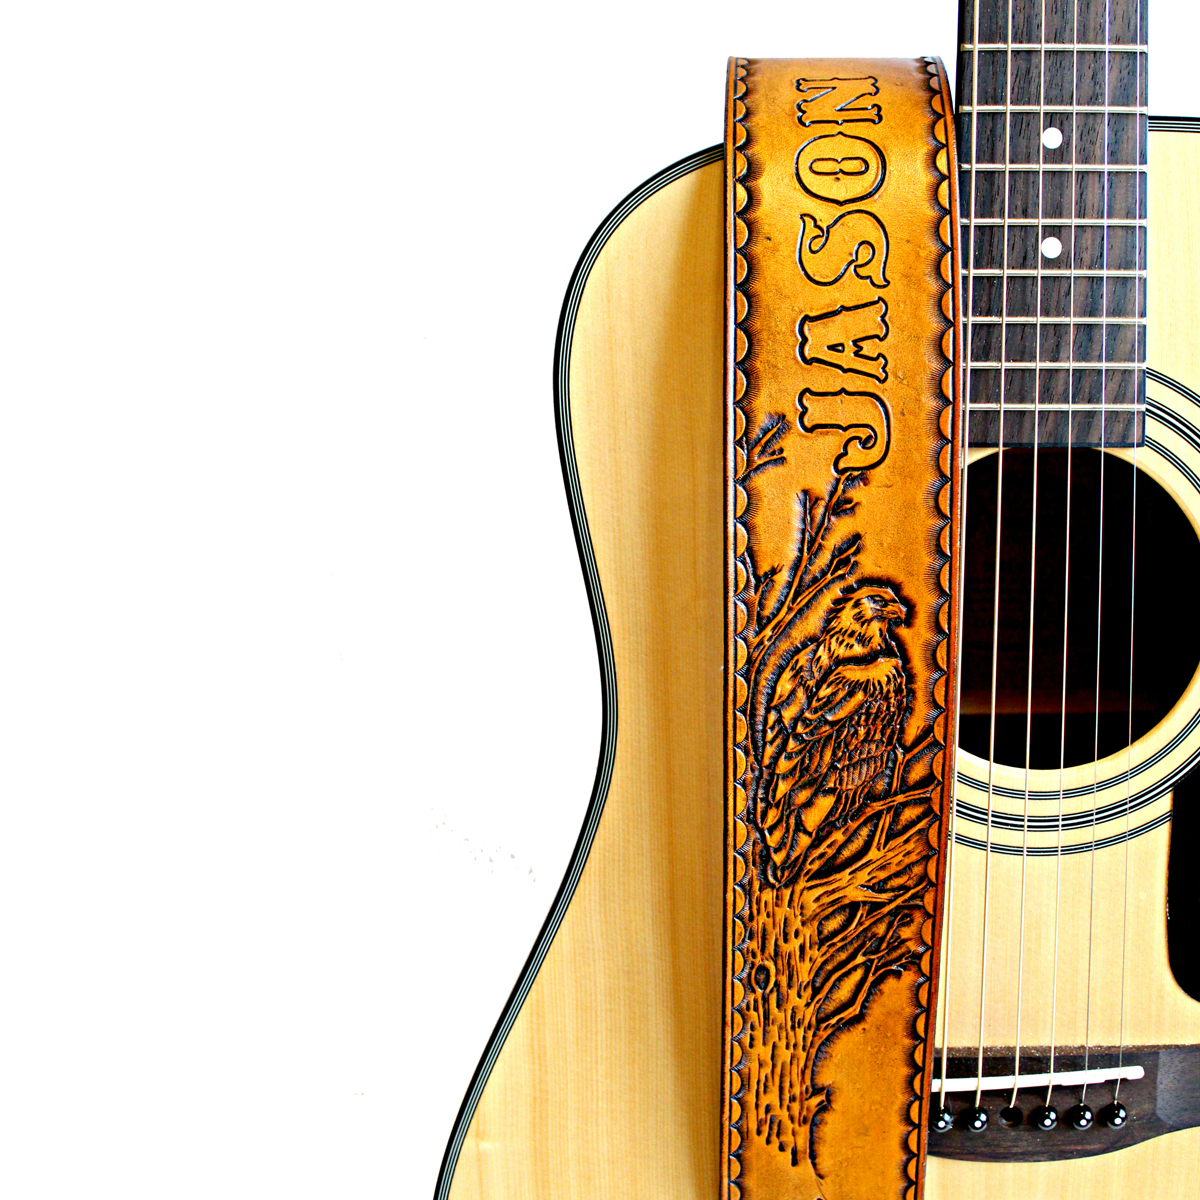 personalized-leather-eagle-guitar-strap-the-leather-smithy_1